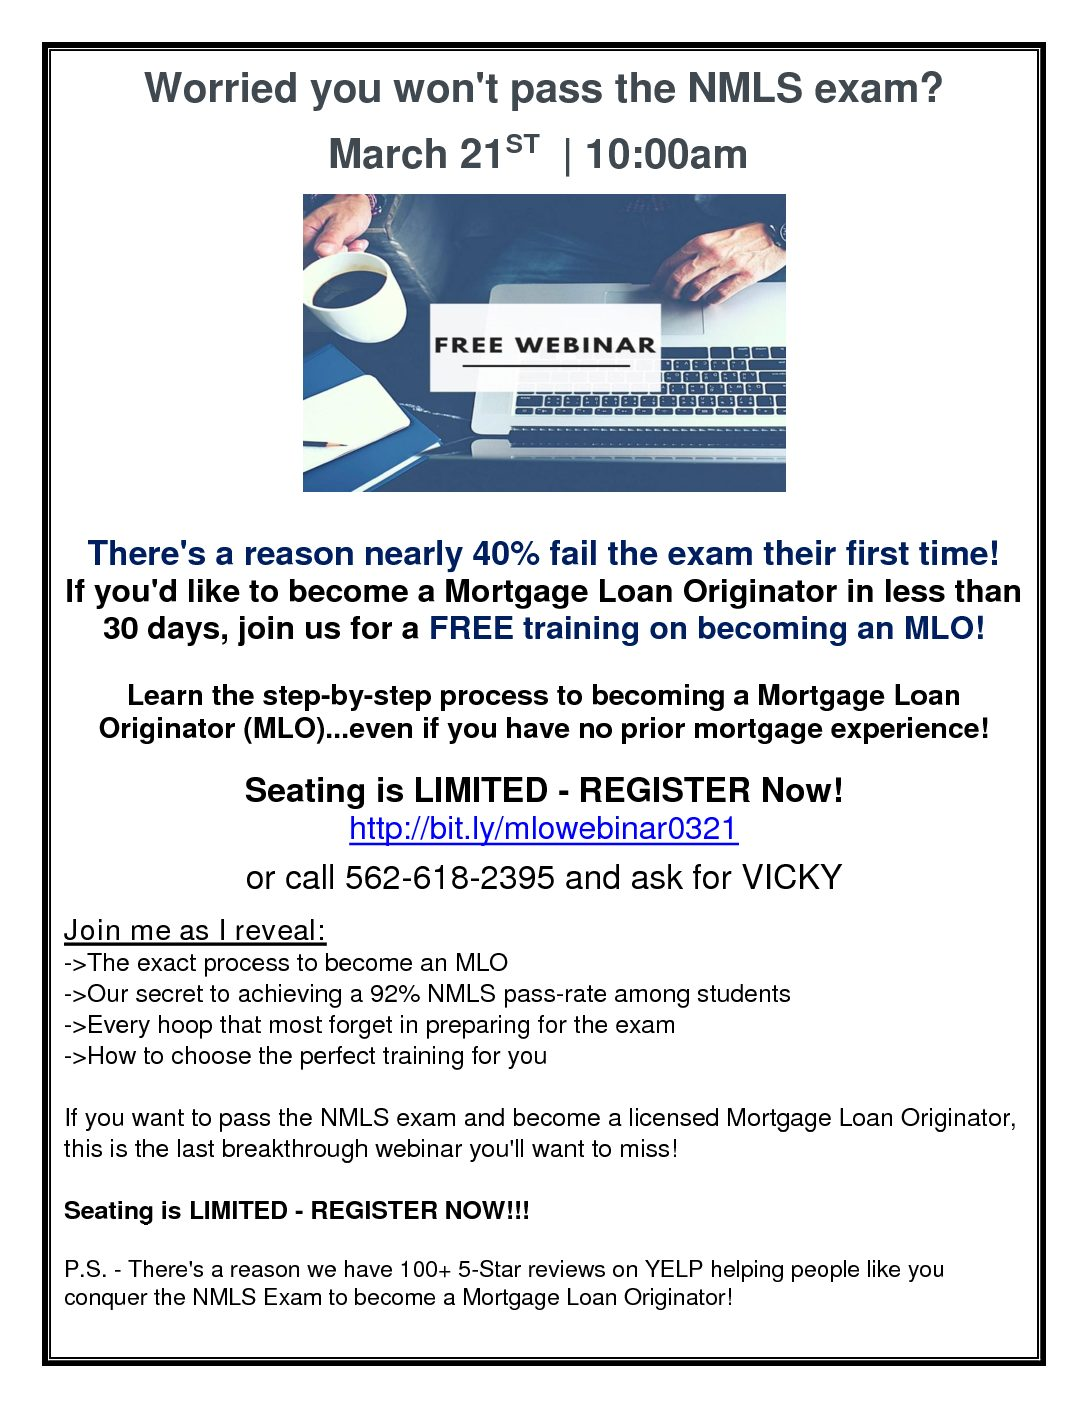 Mortgage loan officer training | Affinity Real Estate and ...